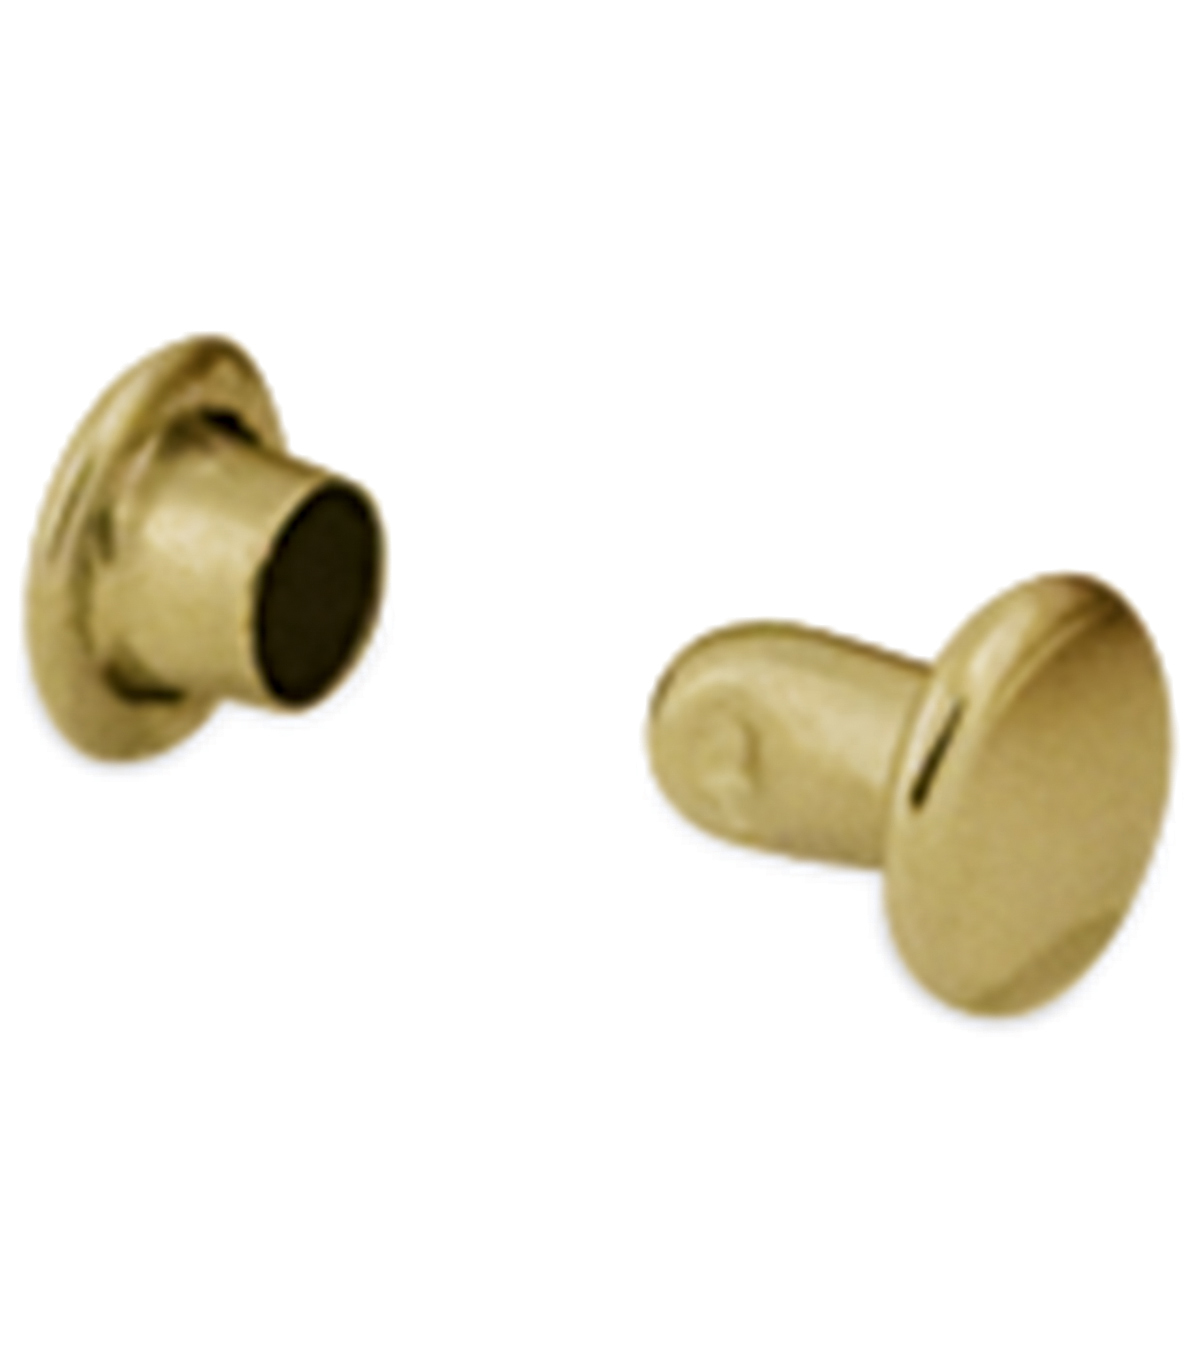 Double Cap Rivet Extra Small .1875\u0022 100/Pkg-Brass Plated